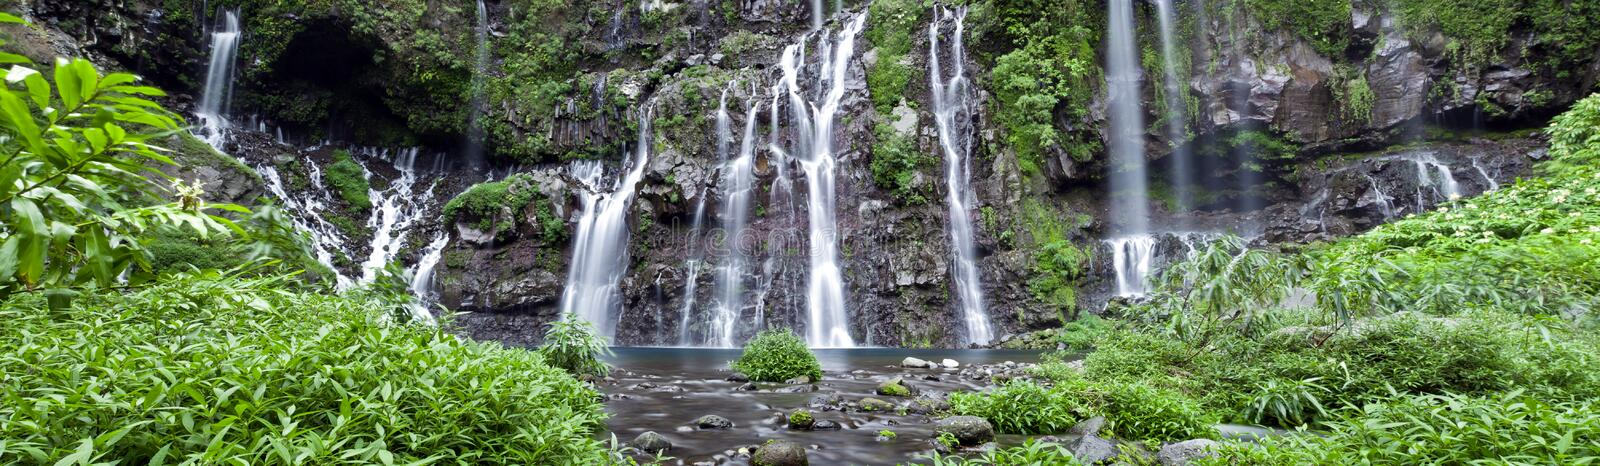 Download Waterfall in jungle stock image. Image of scenery, motion - 19065775